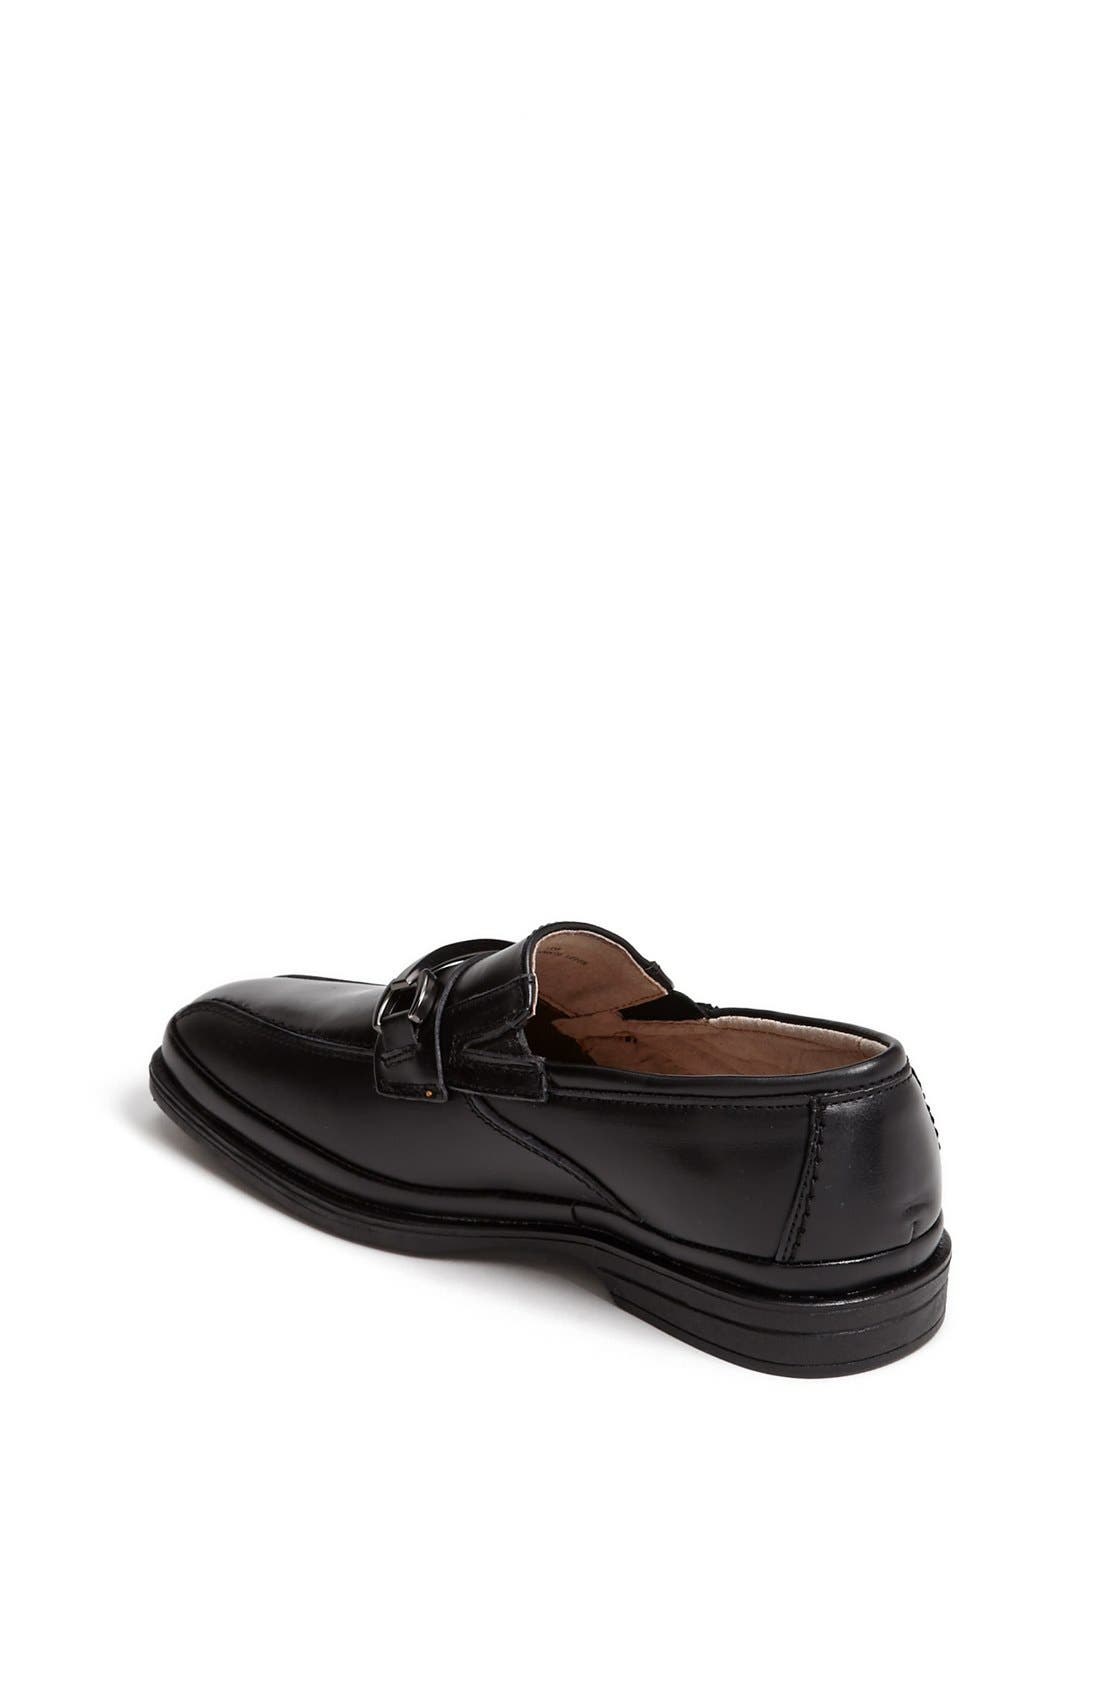 Alternate Image 2  - Florsheim 'Wrapid Jr.' Slip-On (Toddler, Little Kid & Big Kid)